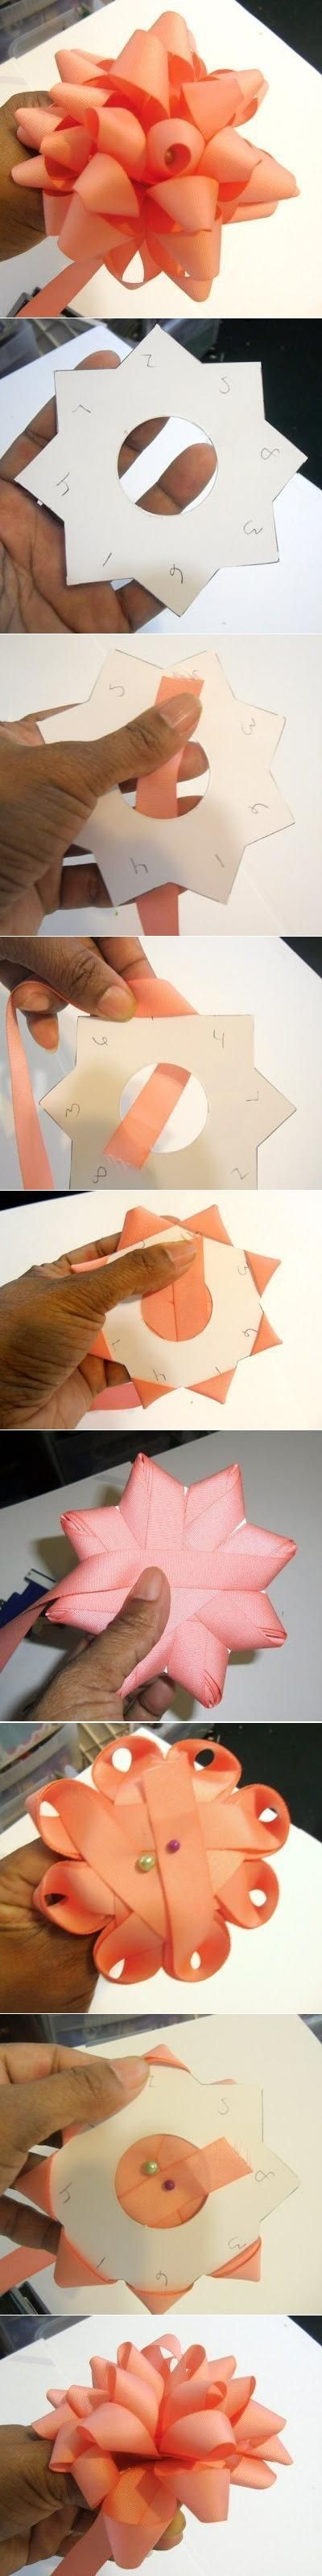 DIY Bow of Ribbon